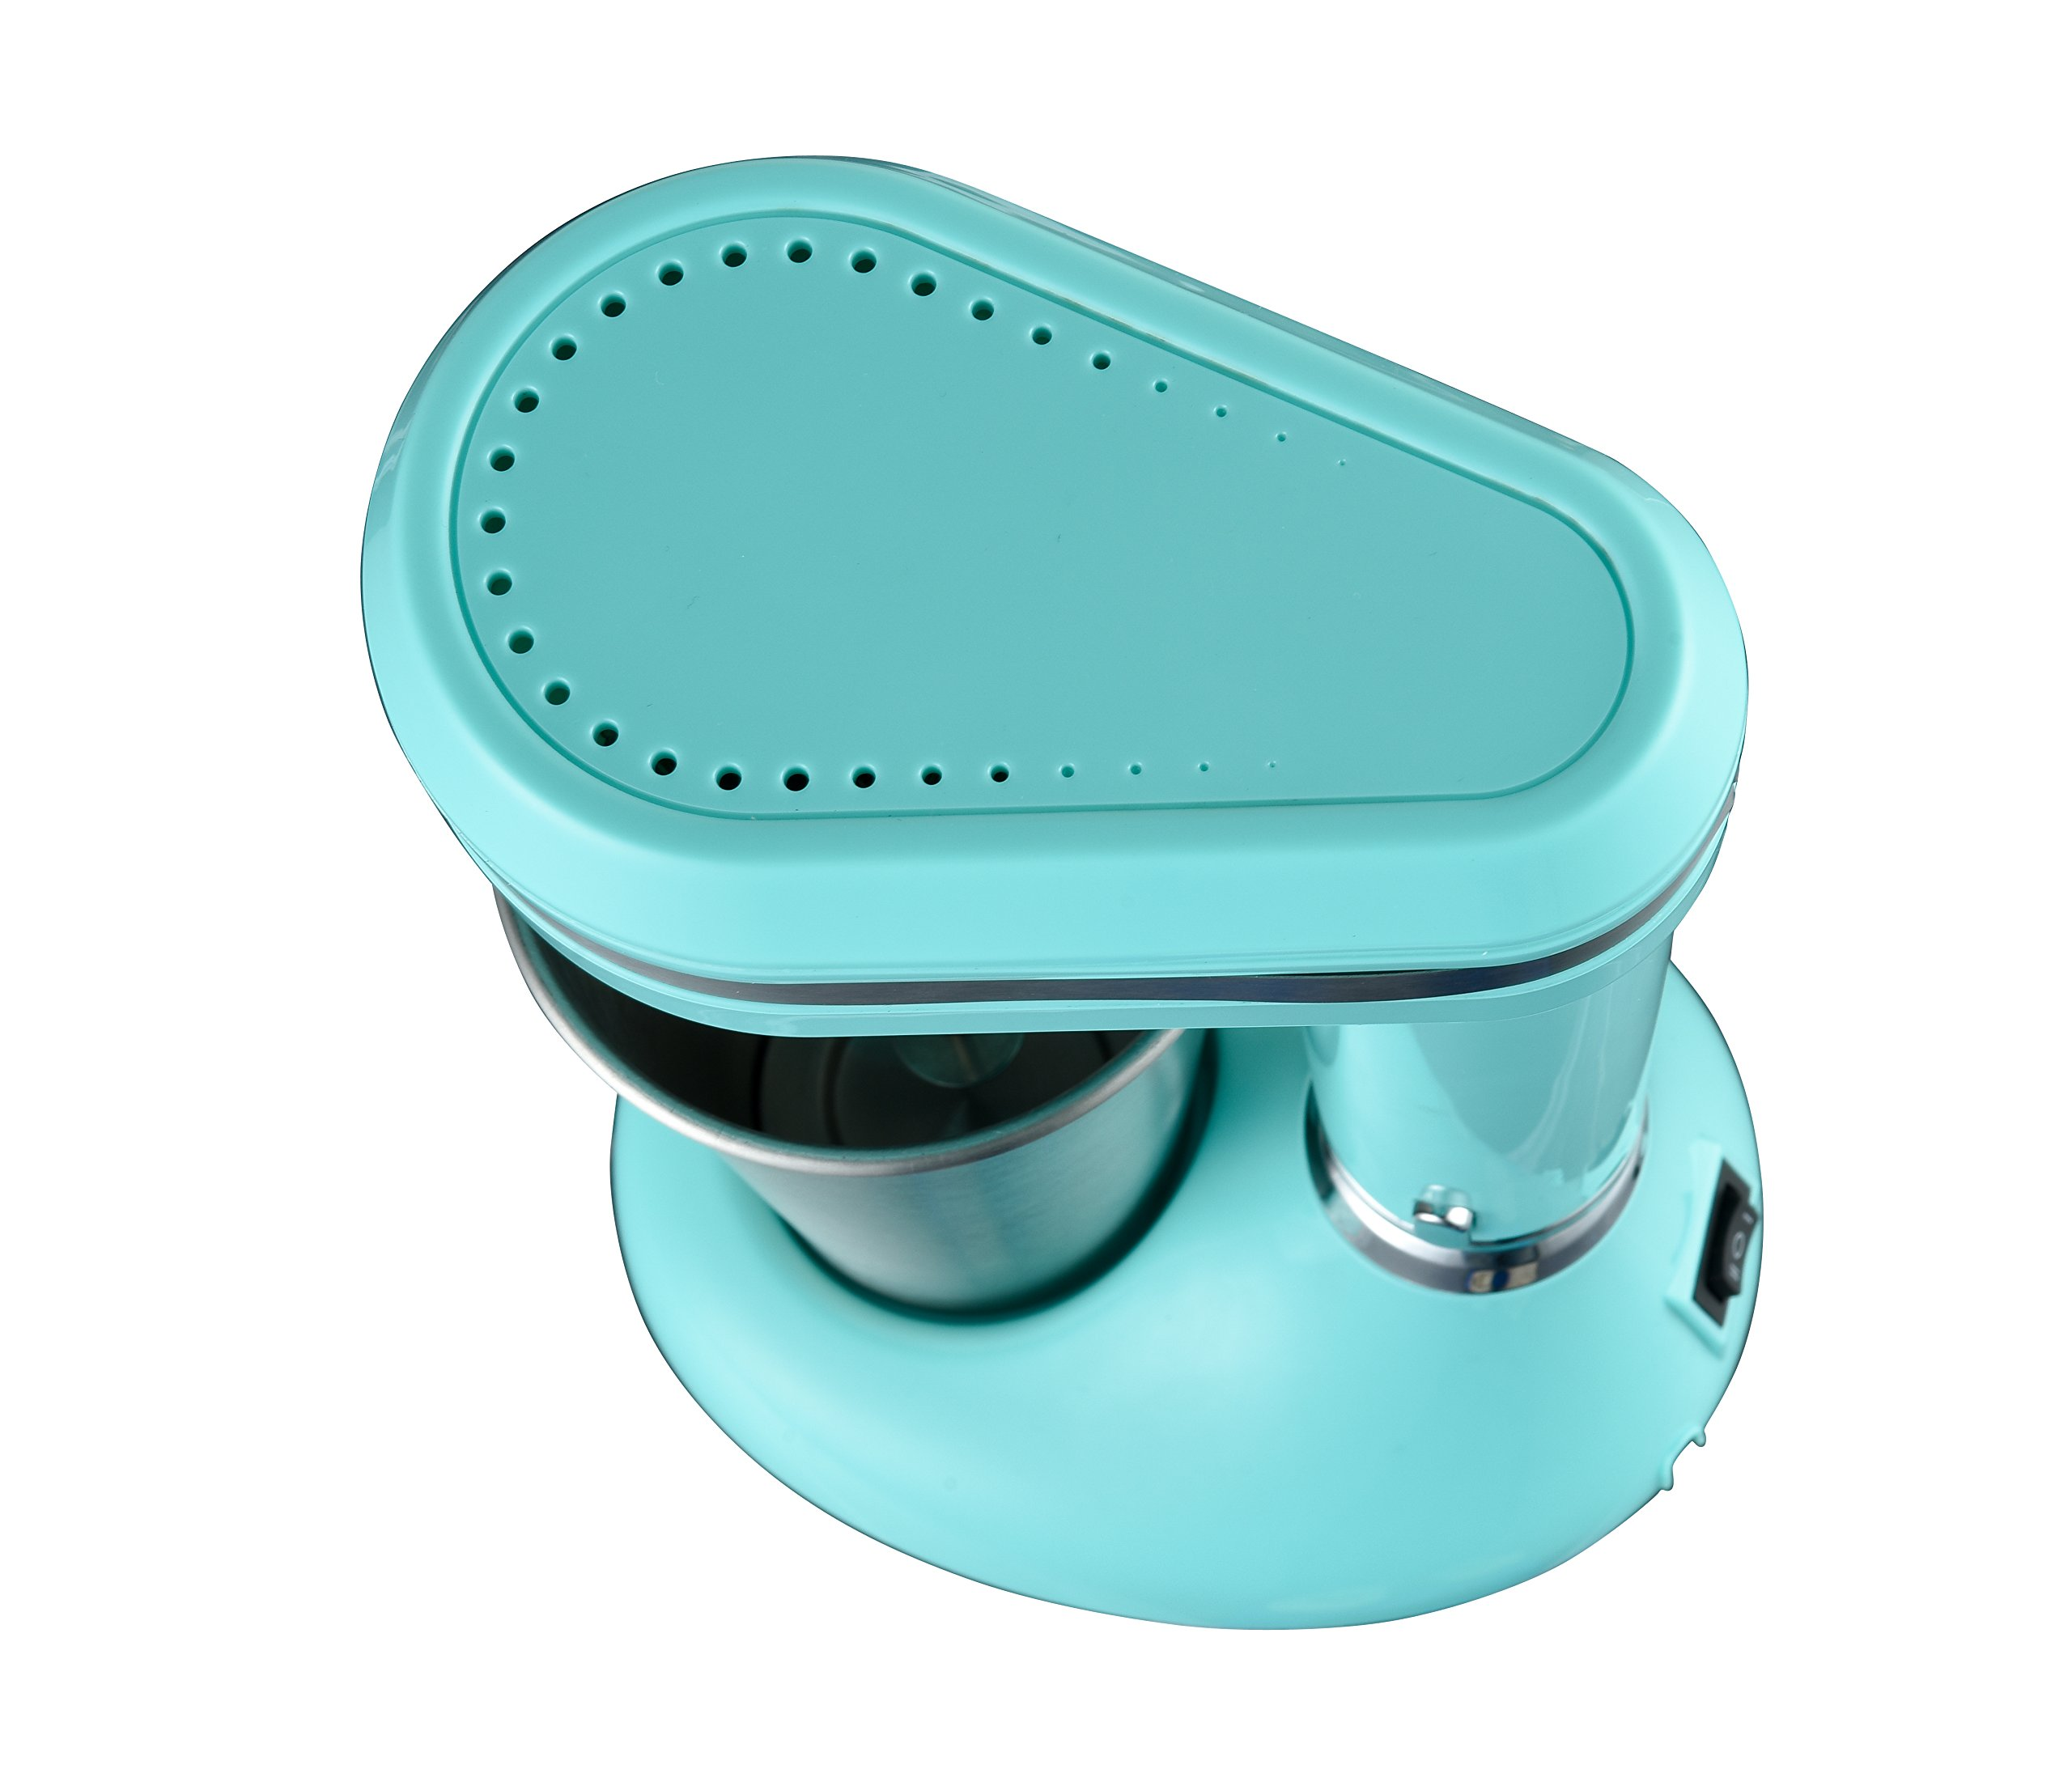 Brentwood SM-1200B Milkshake Maker, Small, Turquoise by Brentwood (Image #5)